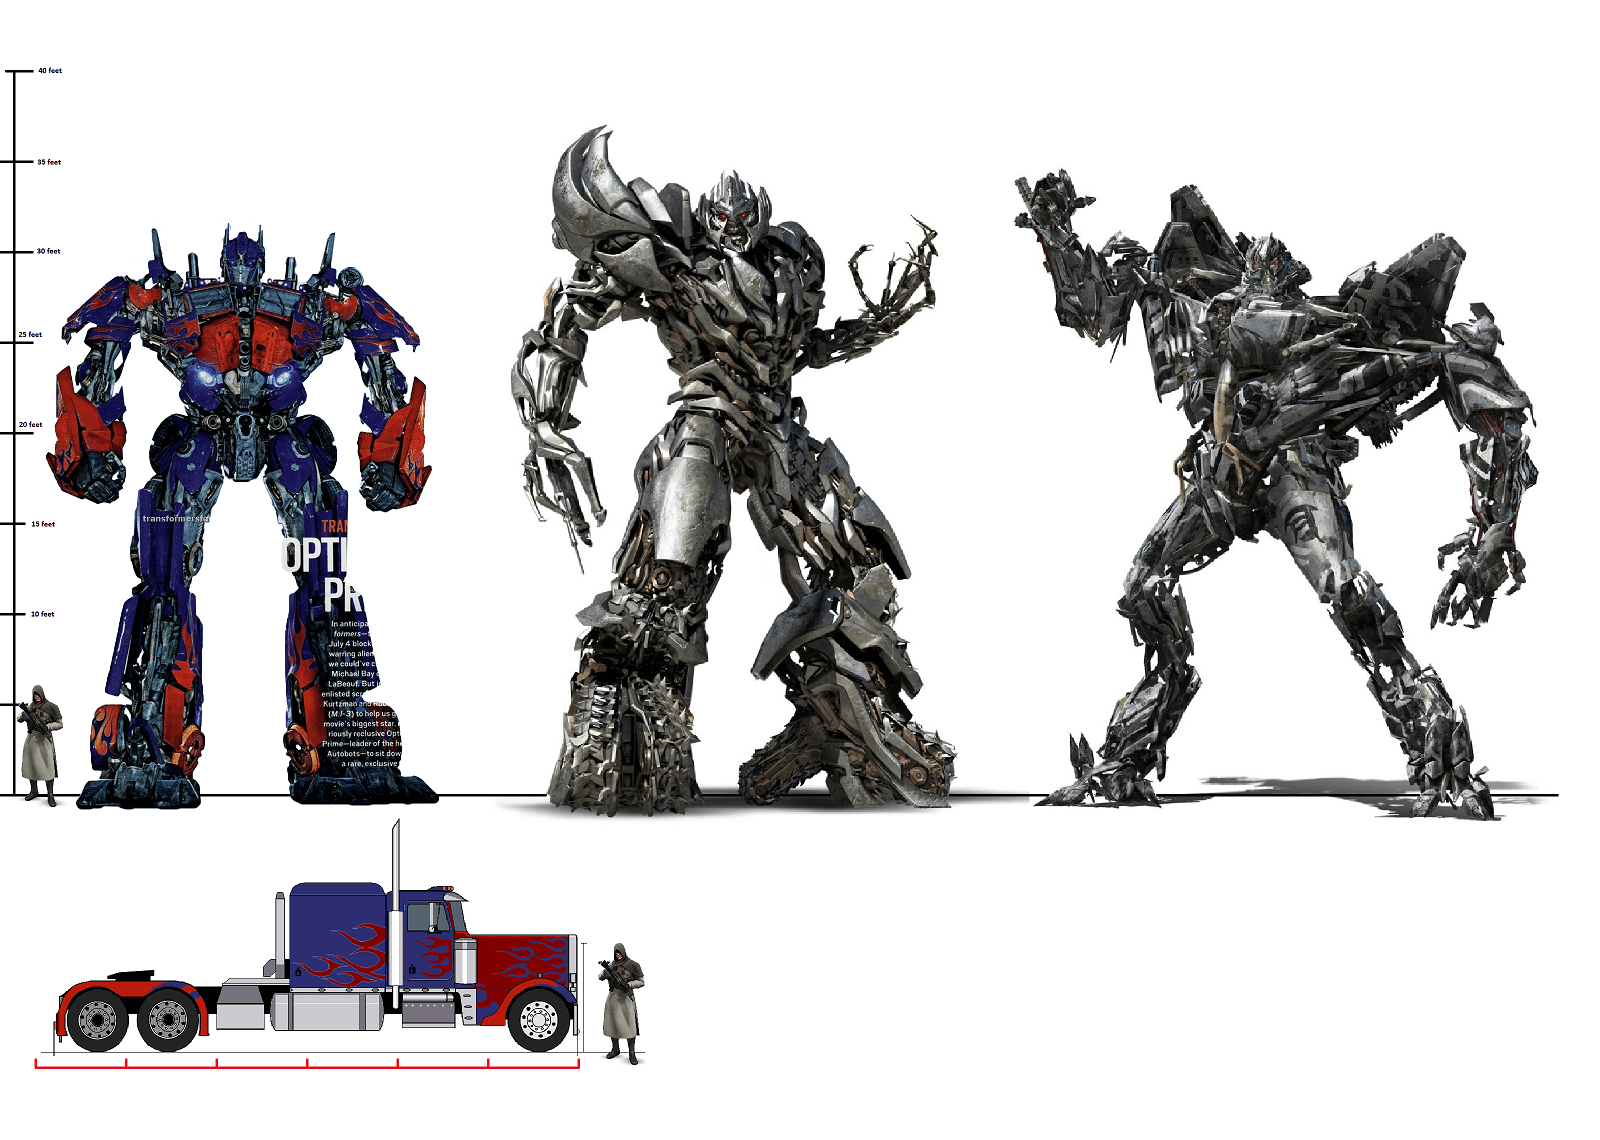 Optimus Correct Height By Destiny110 On Deviantart